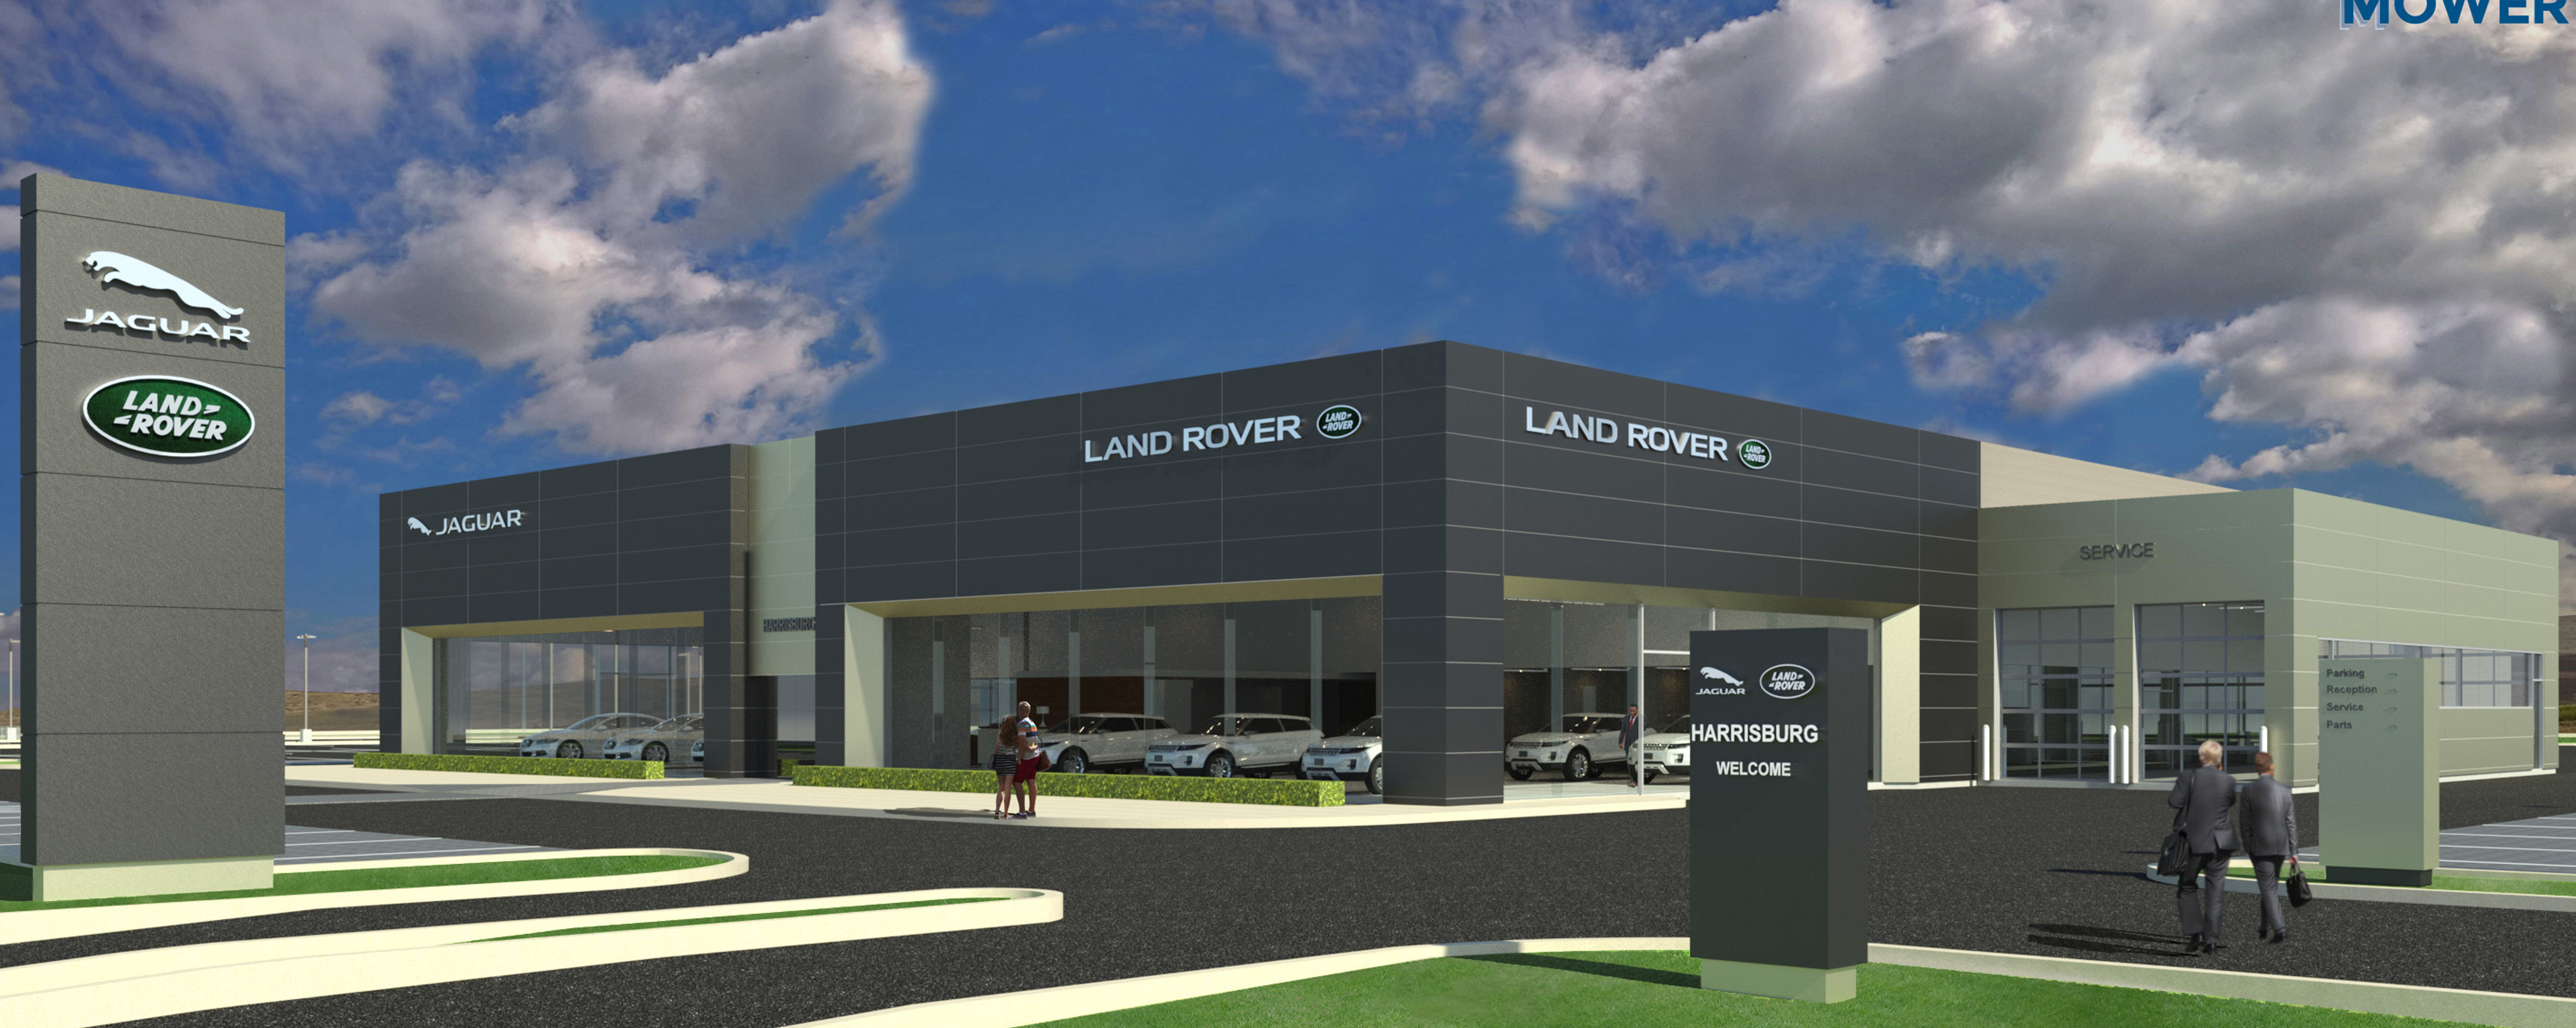 Central Pa Car Dealership To Build New Facility Relocate Pennlive Com